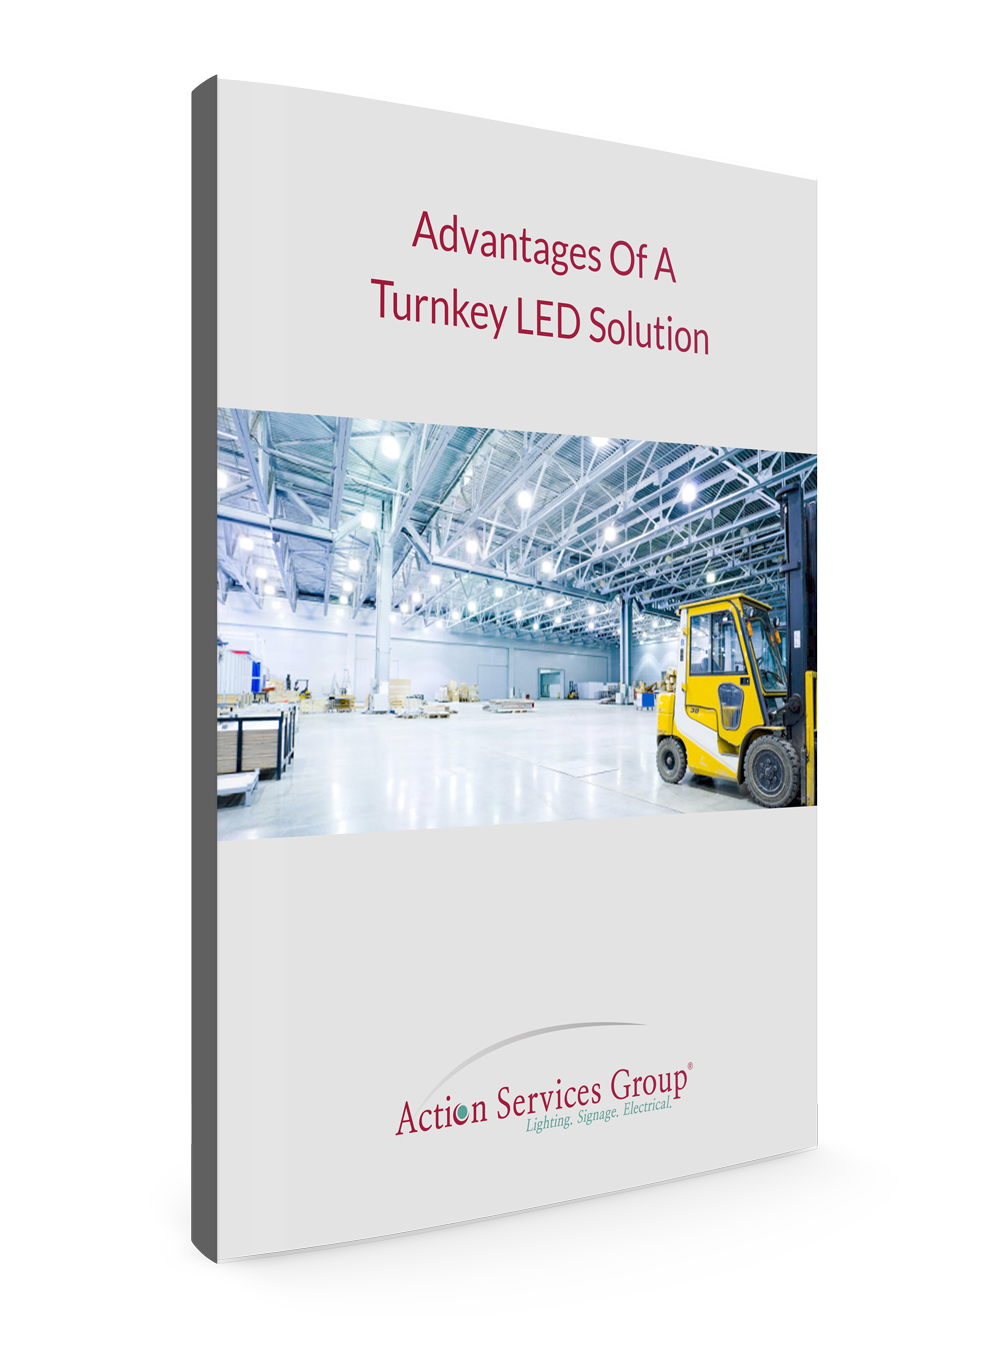 Standing eBook Cover - Action Services Group Advantages of a Turnkey LED Solution